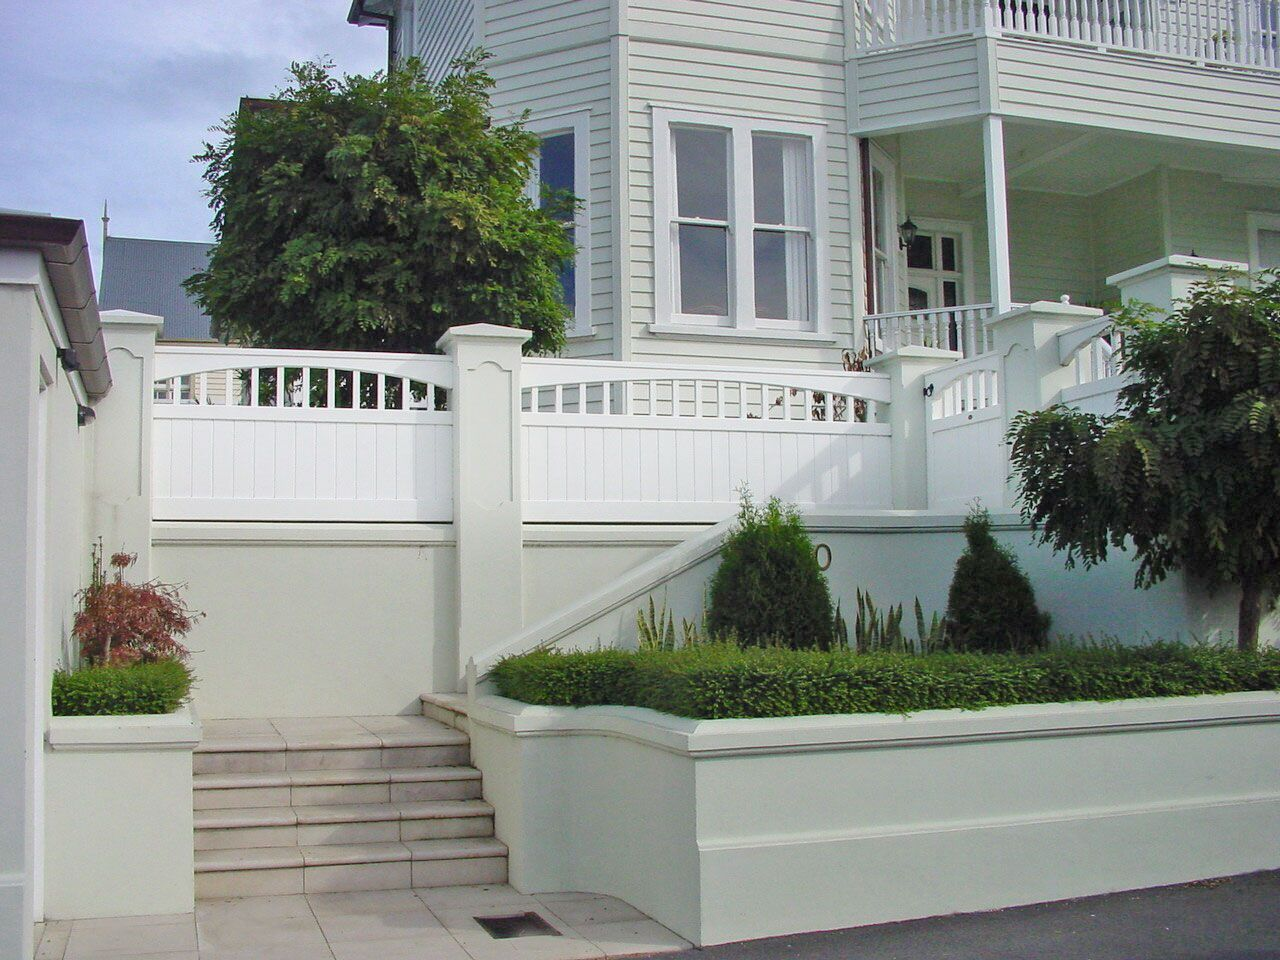 "Custom Fence Gallery_4<br /><span>Custom Fence 04</span><br /><a href=""/enquiry/?about=Custom Fence Gallery_4"">ENQUIRE ABOUT THIS >></a><span class=""ug-icon-favorite "" data-id=""100"" id=""spanFavorite100"" title=""Add to My list""></span>"